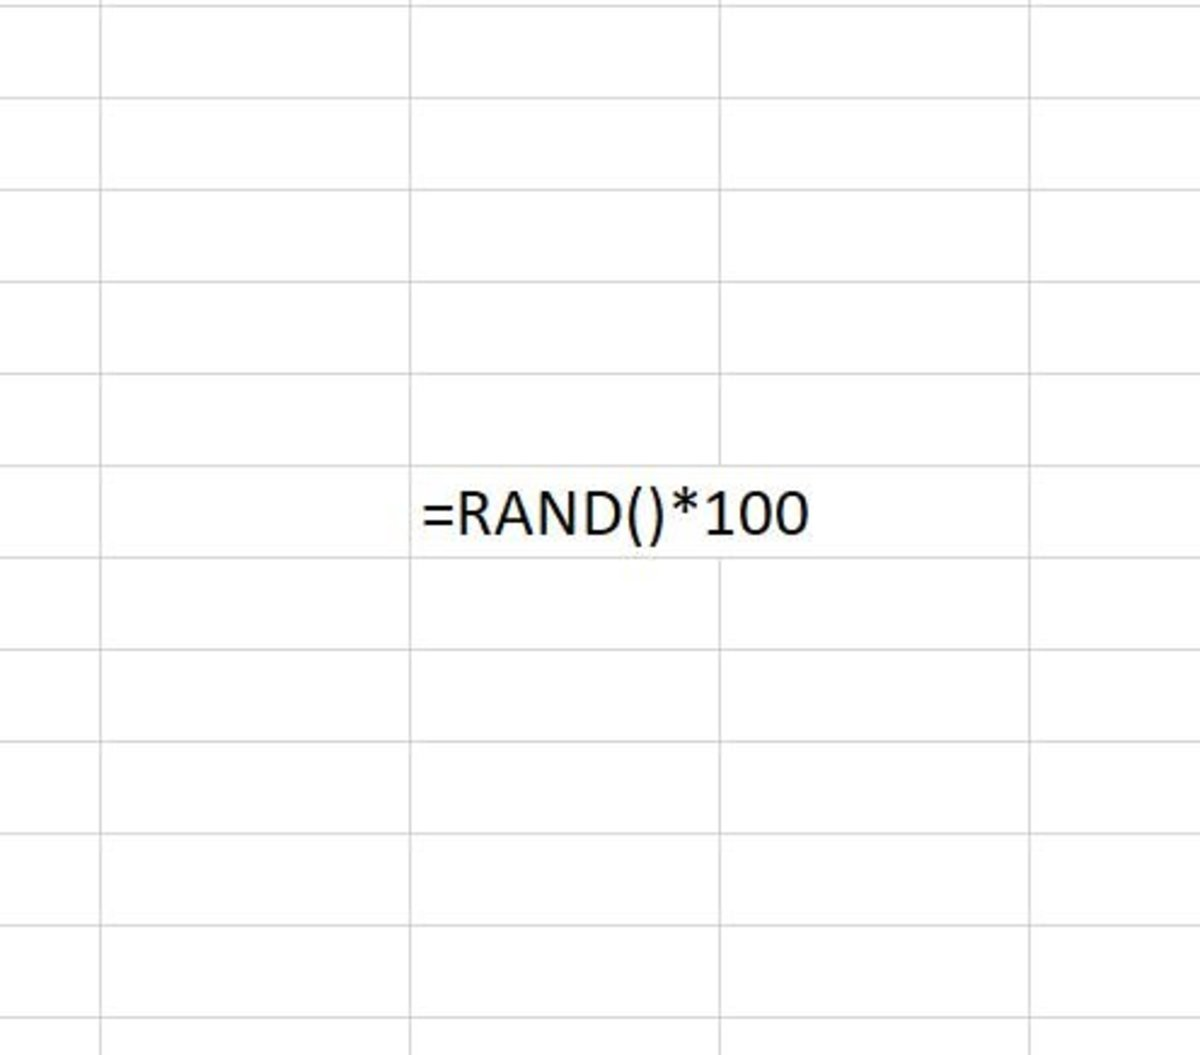 The RAND function returns a random number that is less than 1 and greater than or equal to zero.